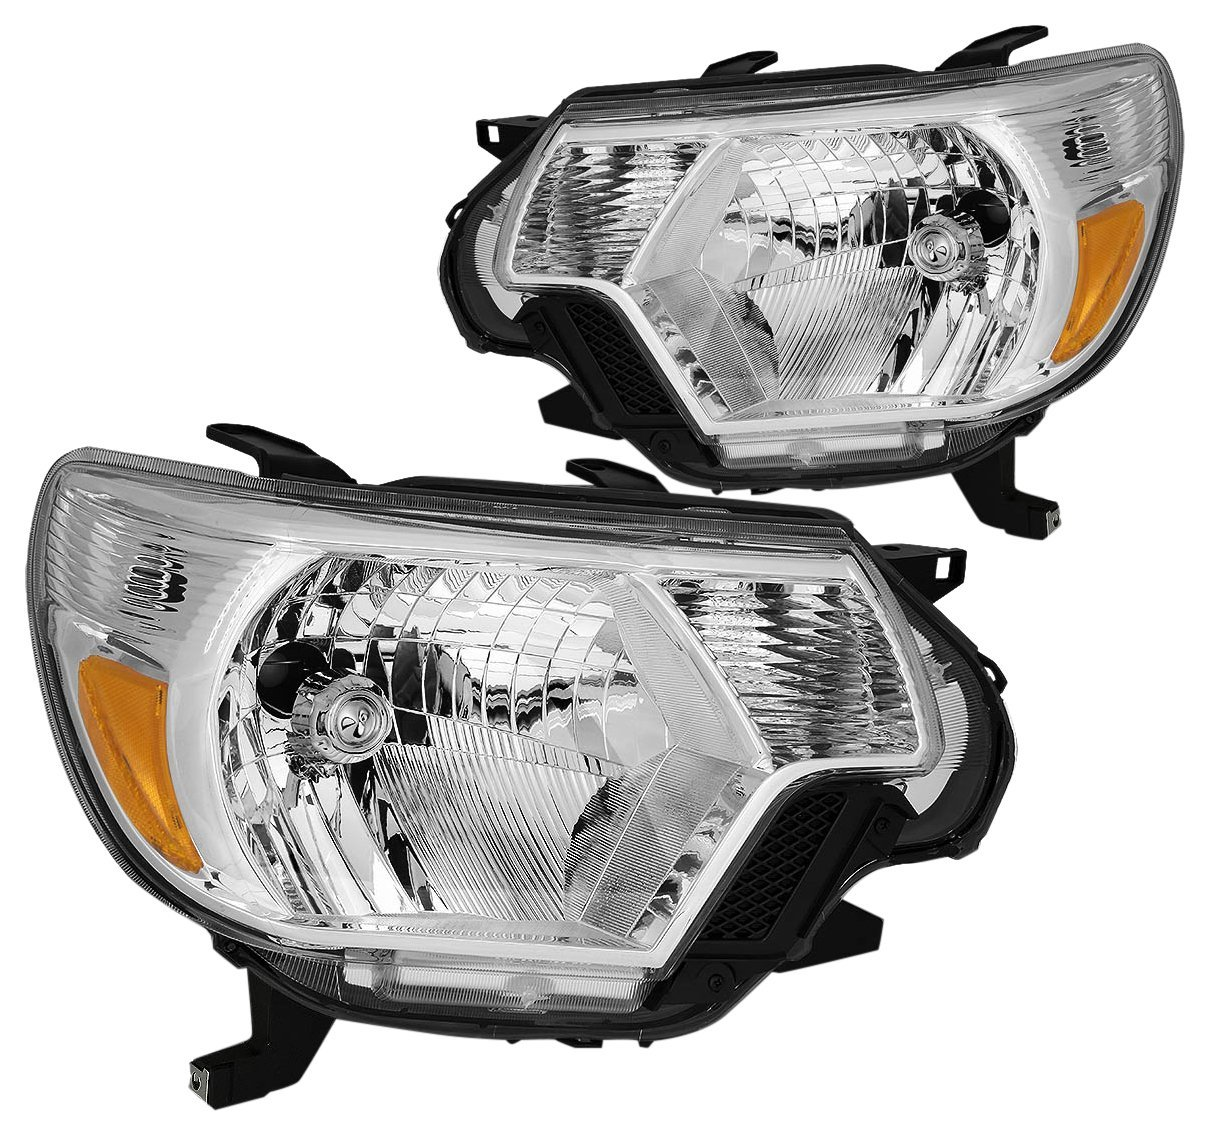 DNA MOTORING HL-OH-TT12-CH-AM Headlight Assembly, Driver and Passenger Side